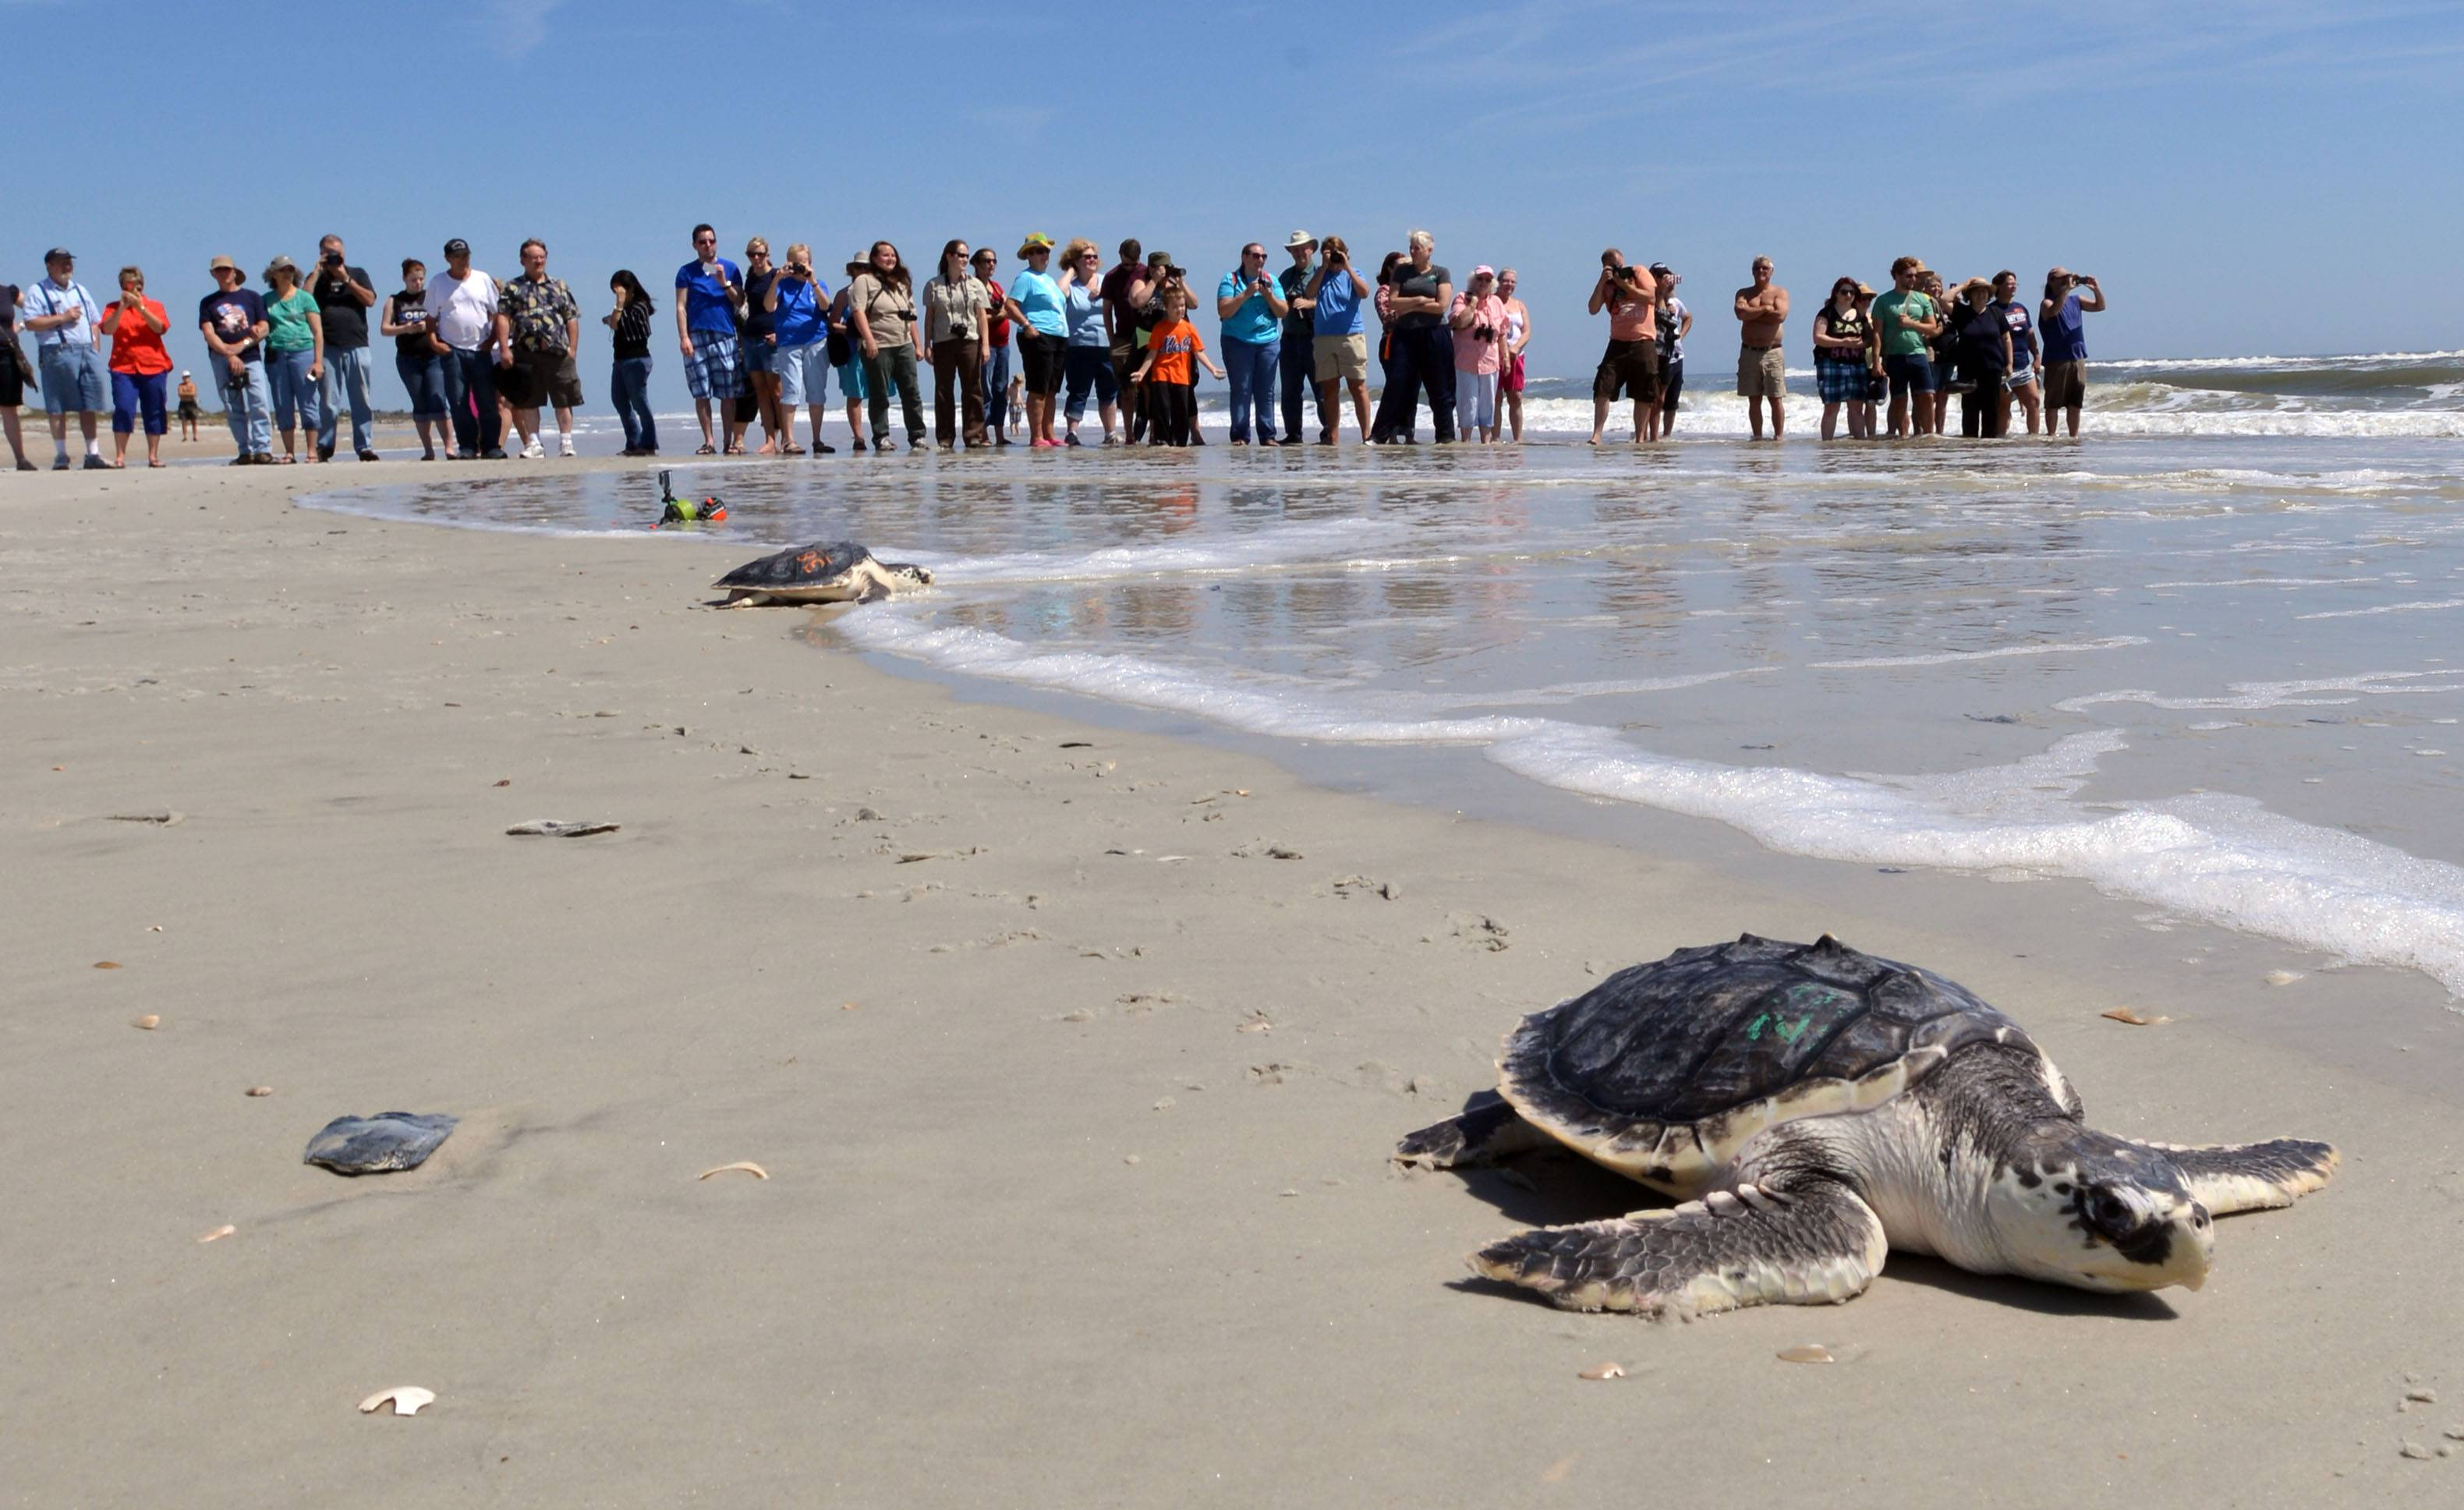 A group of people watch a turtle swim to the ocean after rehabilitation in Jacksonville, Fla. The Obama Administration is opening the Eastern Seaboard to offshore oil exploration for the first time in decades.